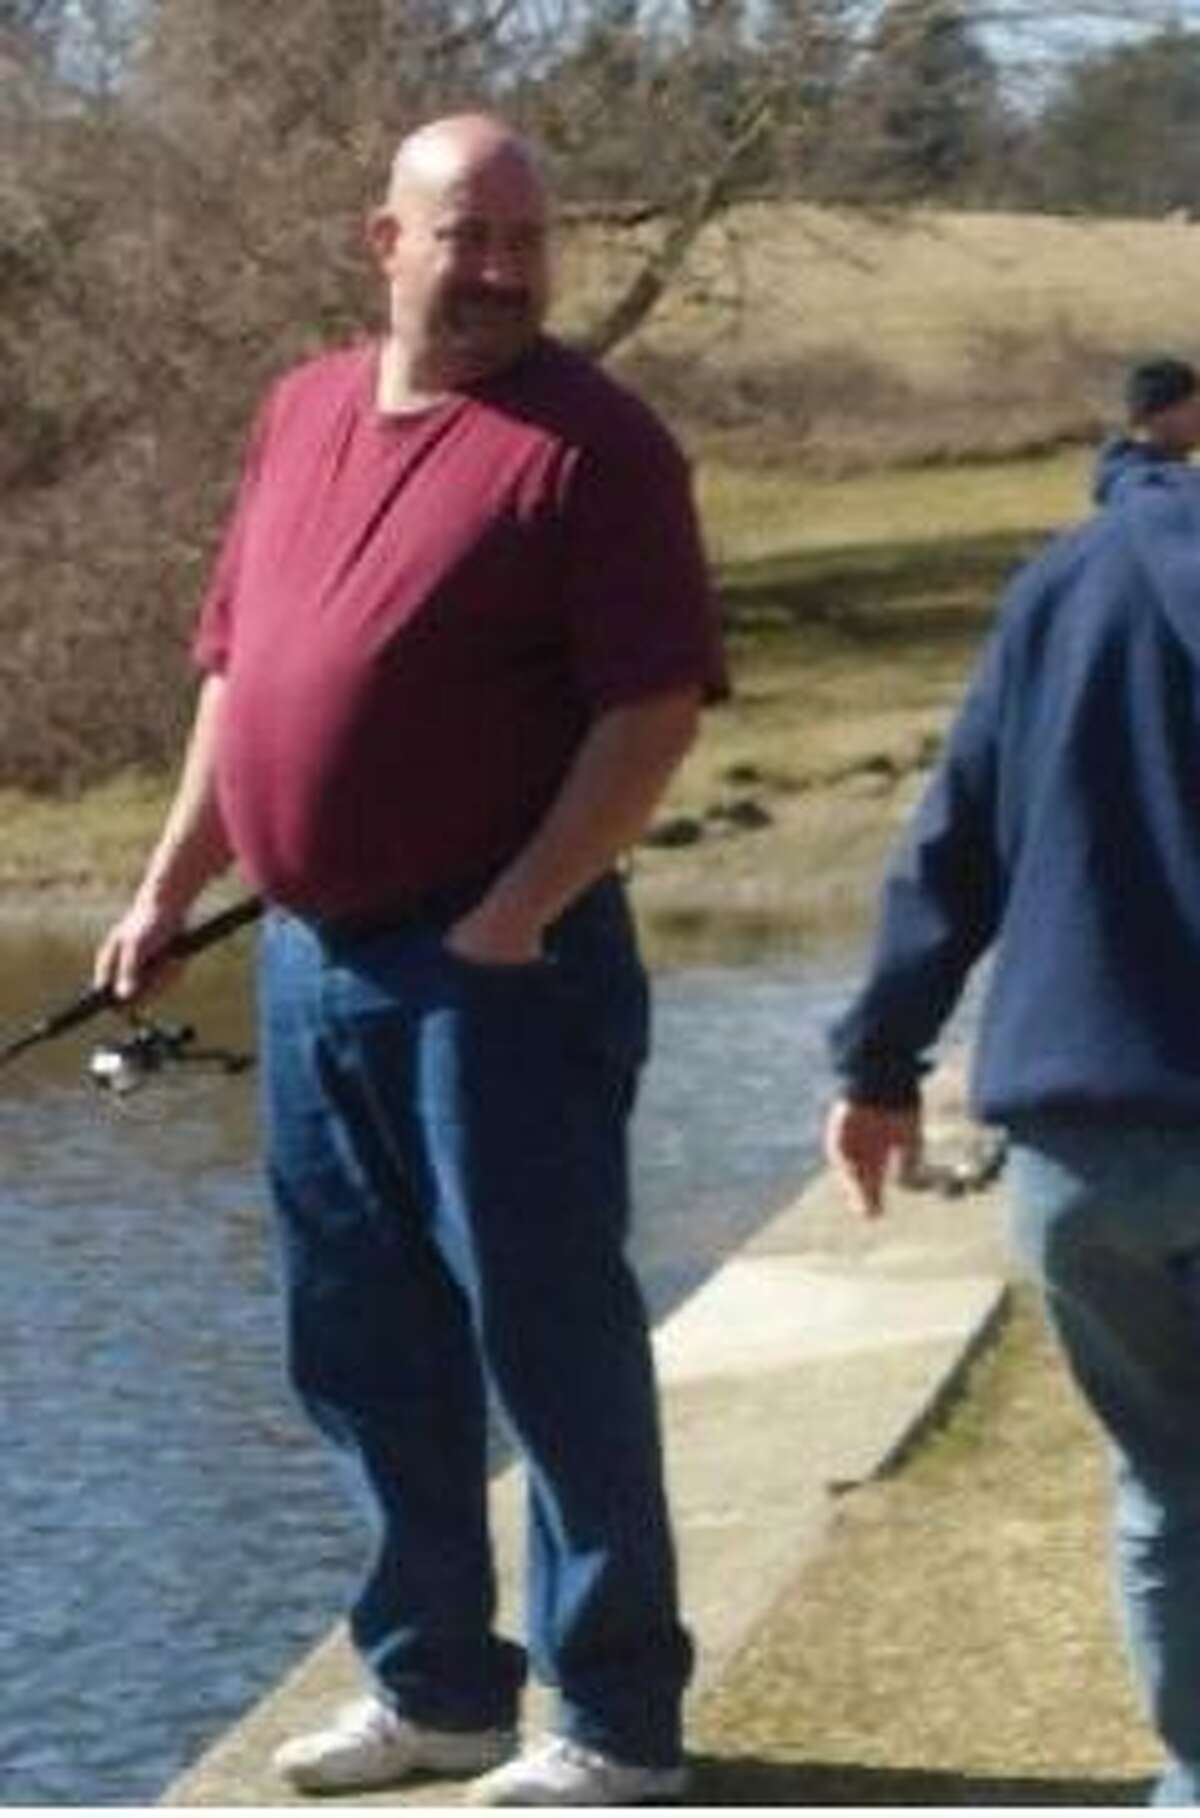 Torrington police are looking to find John Ferentheil, 46, who was last seen Feb. 1, 2013.